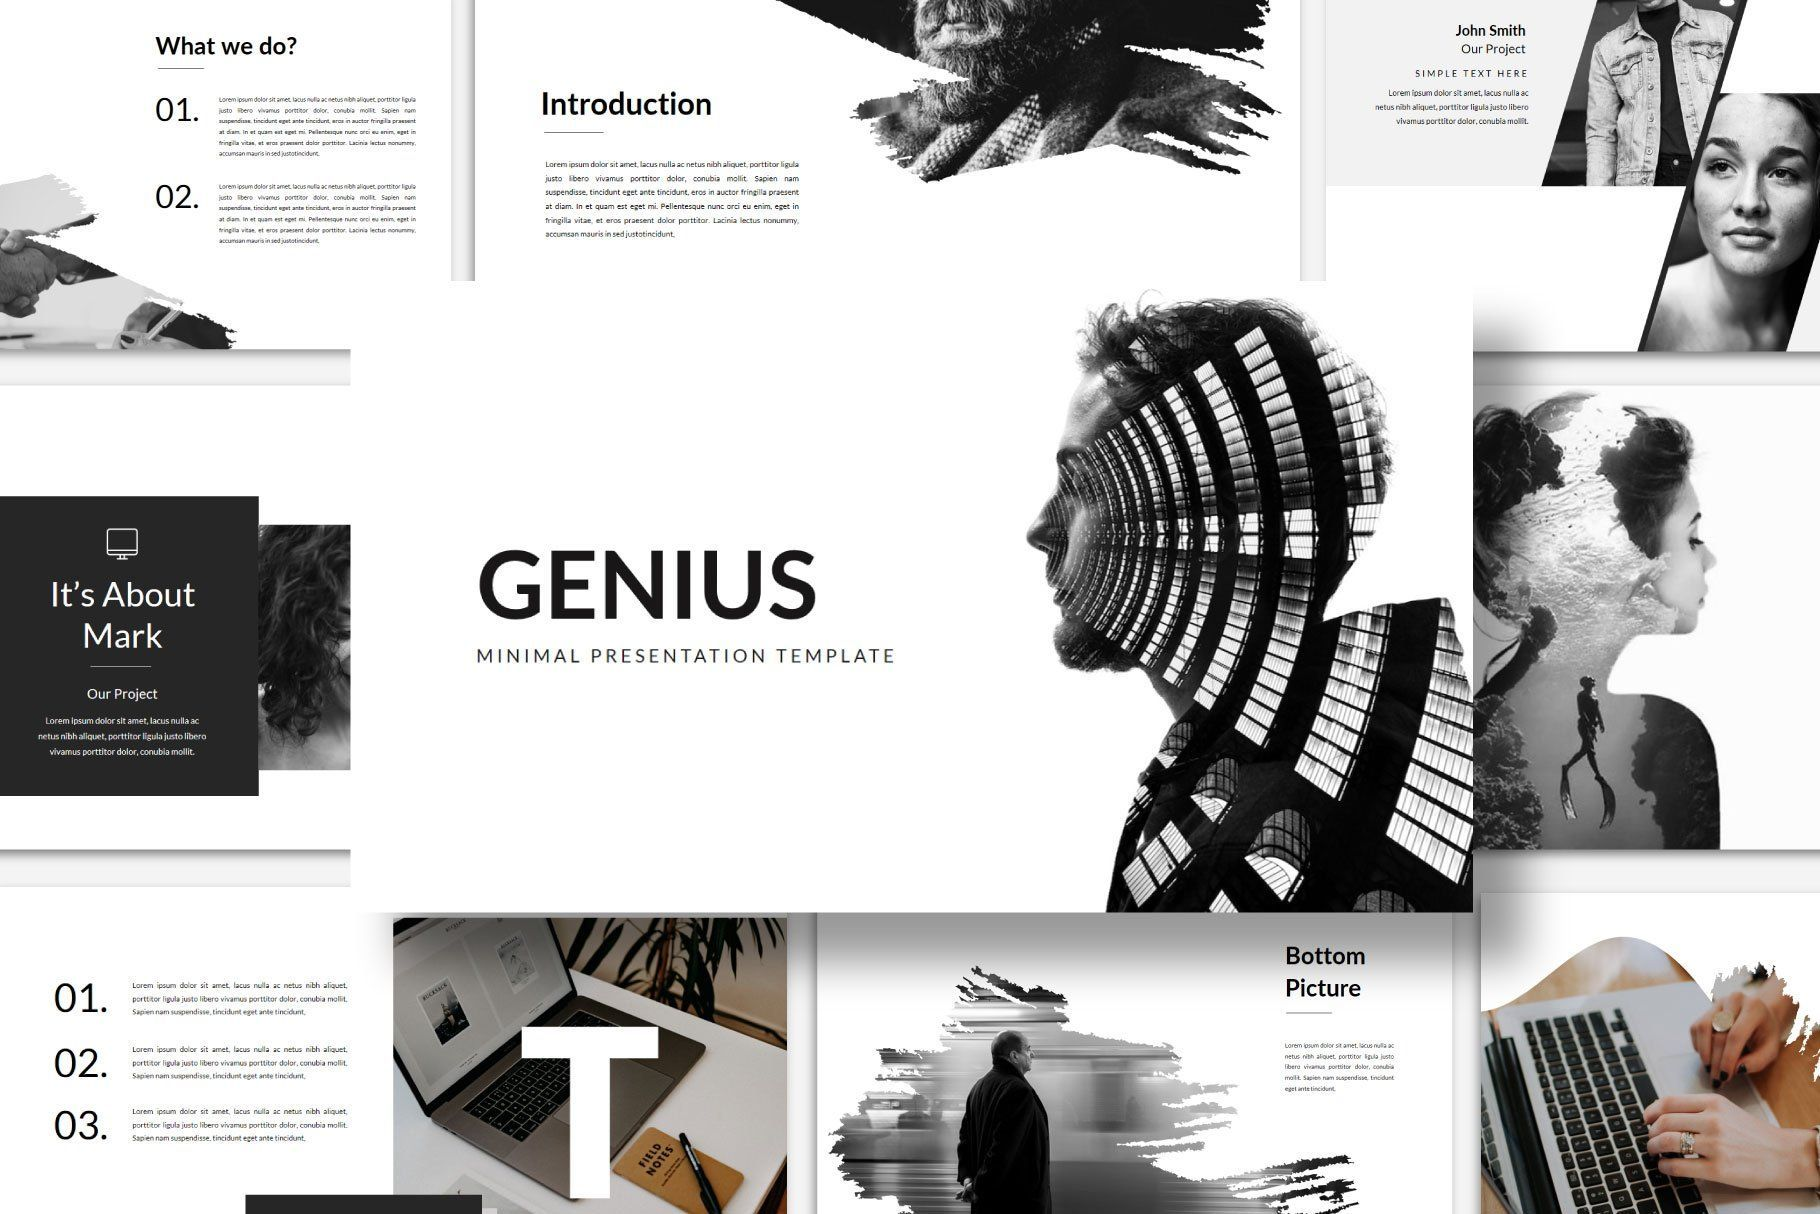 Genius Powerpoint Presentation Template An Elegant Sleek Easy To Use Template Made For Powerpoint Its M Keynote Template Powerpoint Templates Image Theme